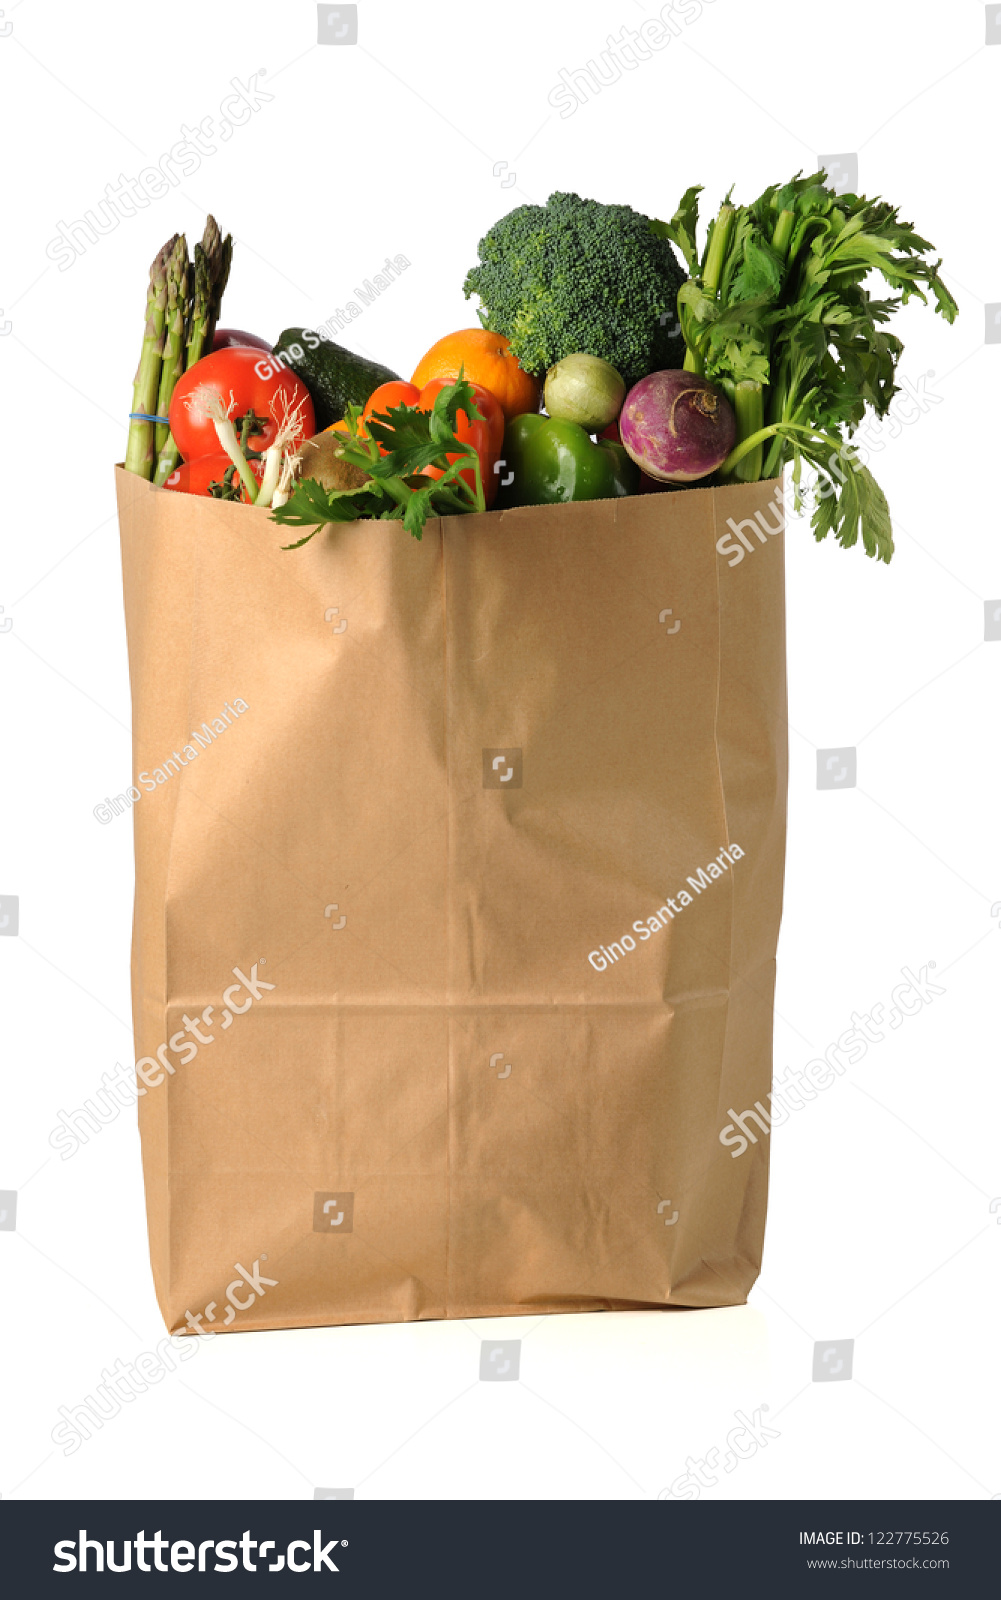 Fruits Vegetables Paper Grocery Bag Isolated Stock Photo 122775526 ...